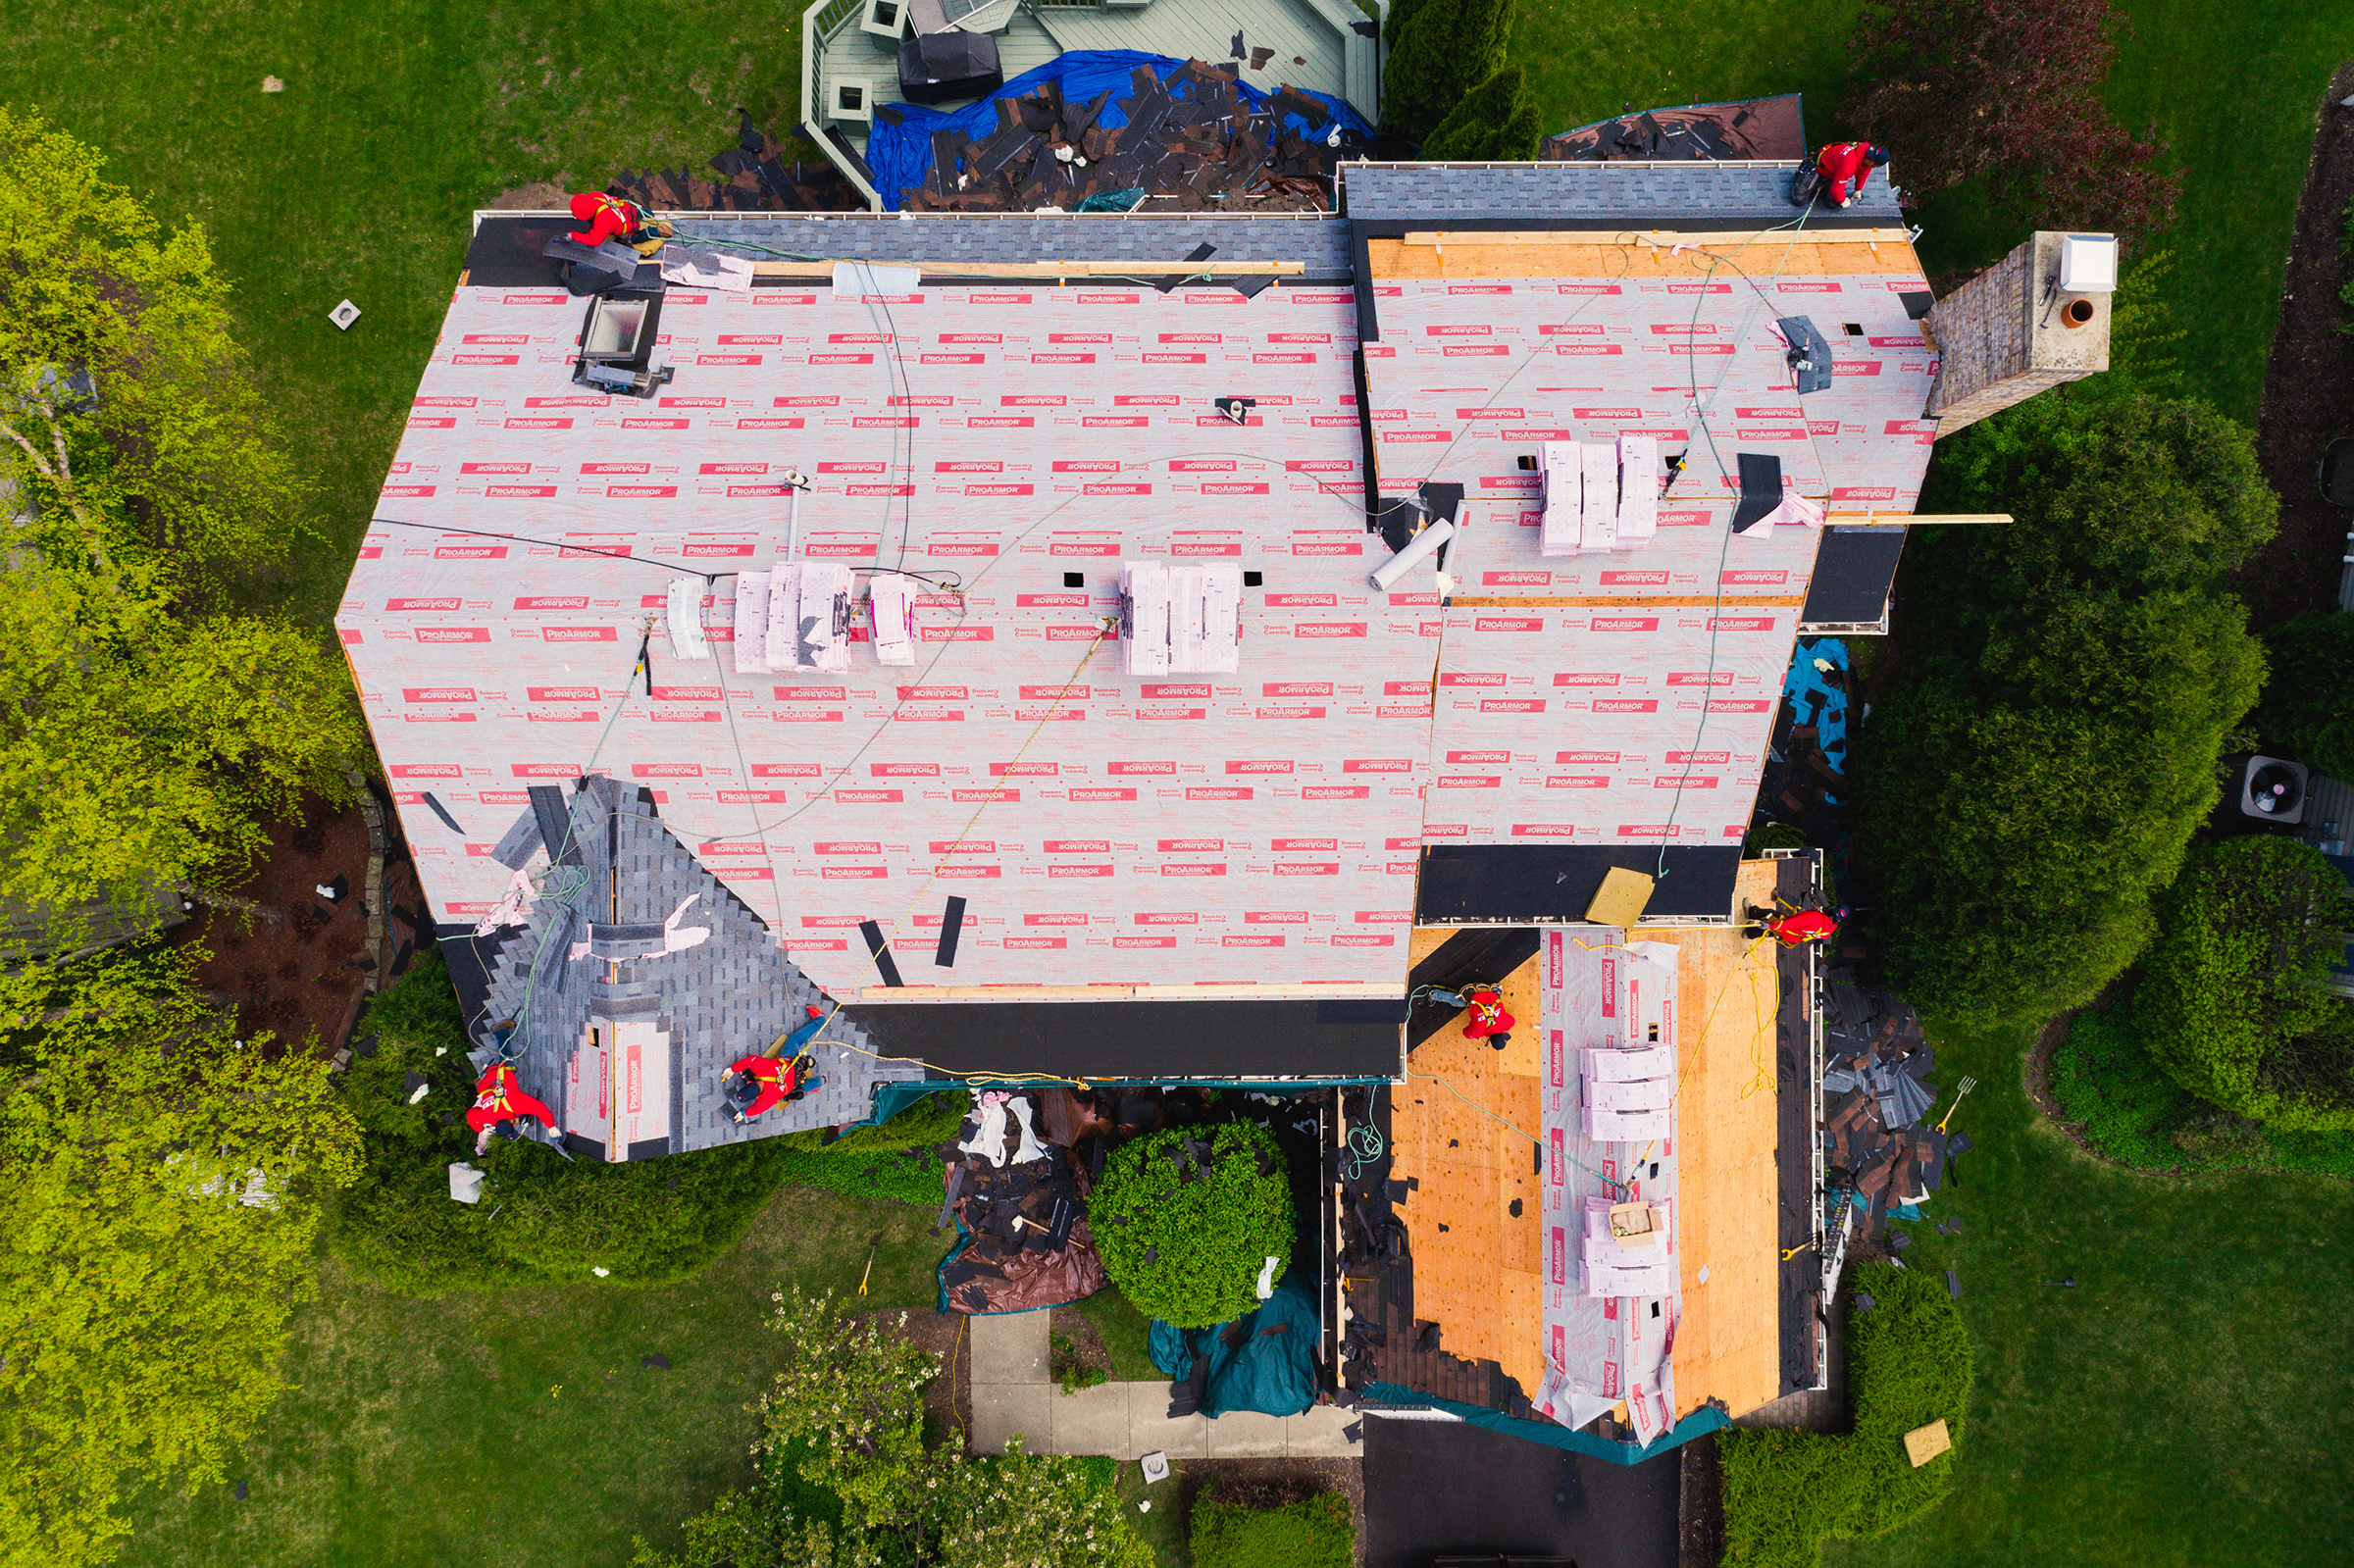 kake-chicago-content-creation-digital-marketing-artex-roofing